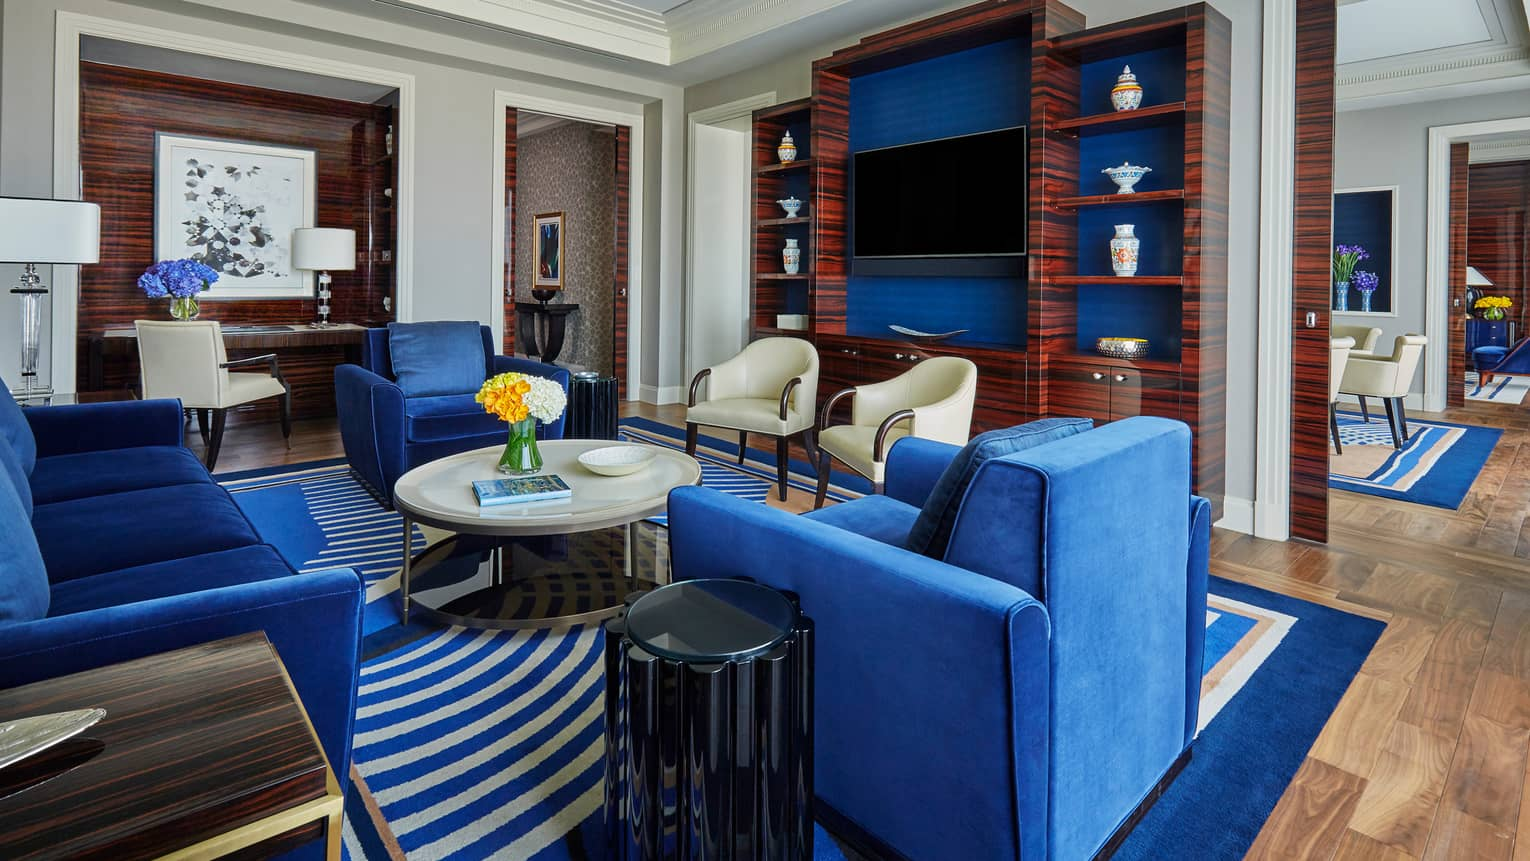 State Suite living room with plush blue sofa, armchairs, round coffee table, TV wall cabinet